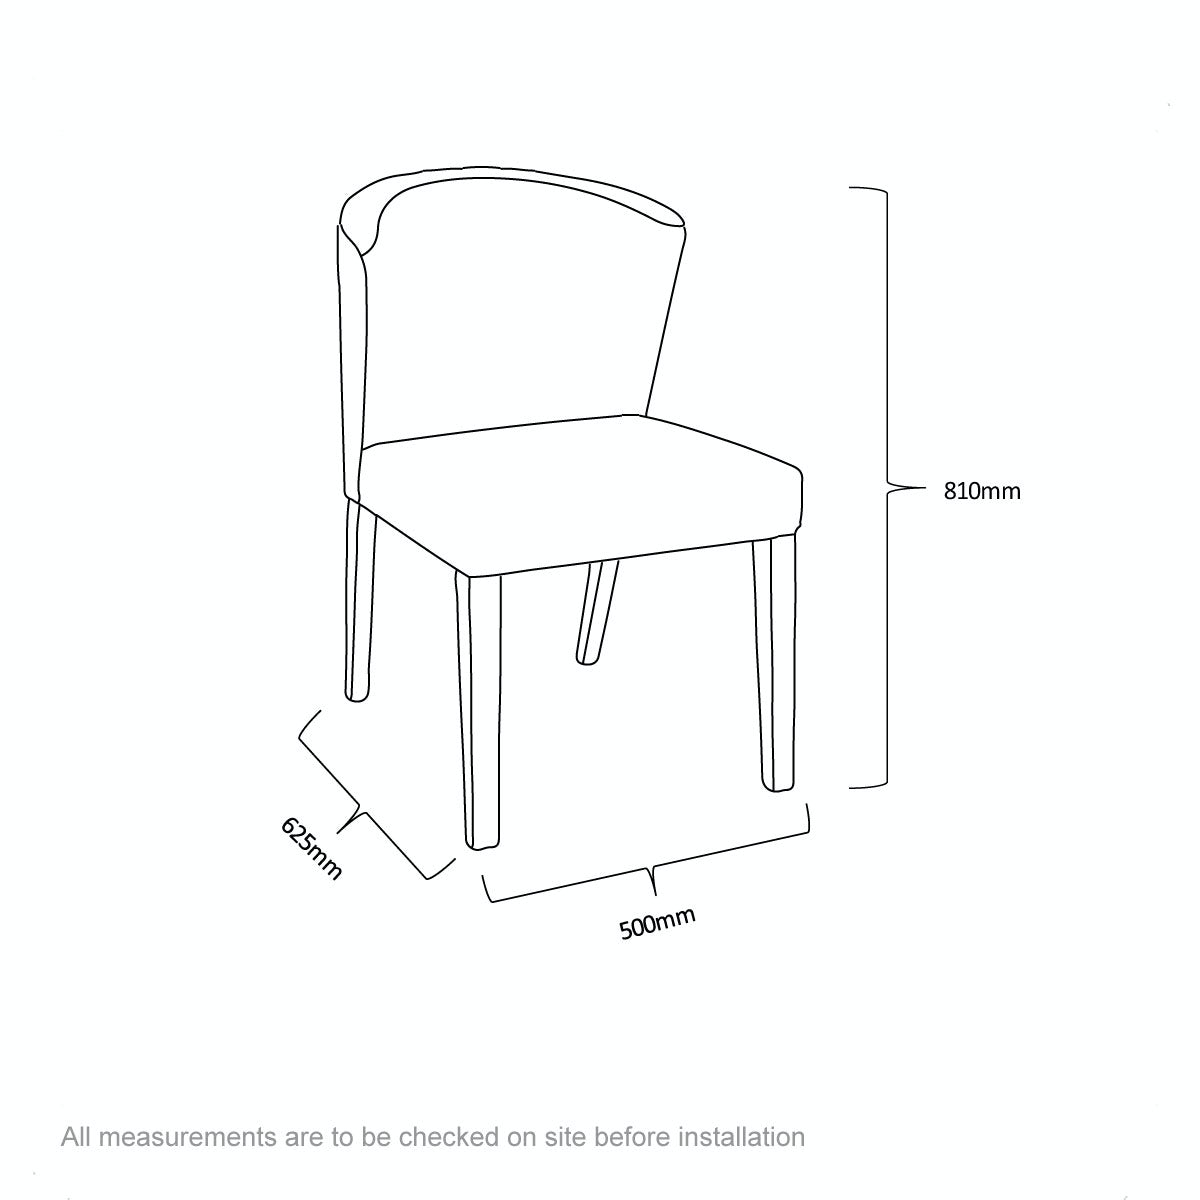 Dimensions for Hudson walnut and dark grey pair of dining chairs